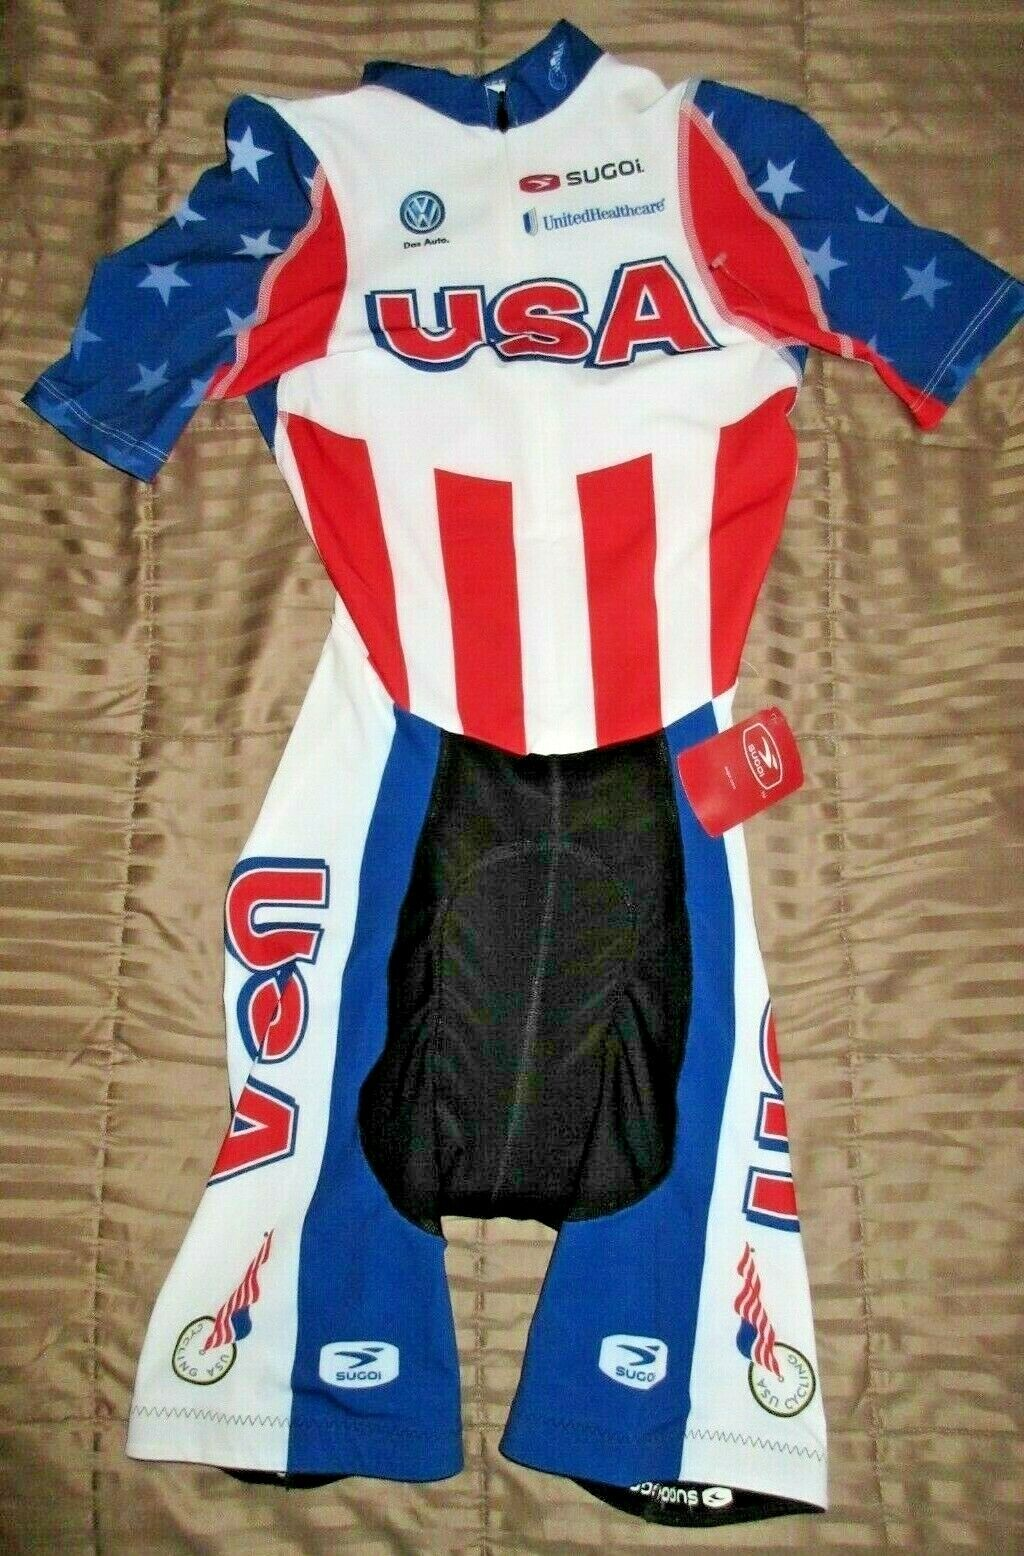 Sugol USA Adult  Cycling Skin Suit RS Proskinsuit Short New  will make you satisfied